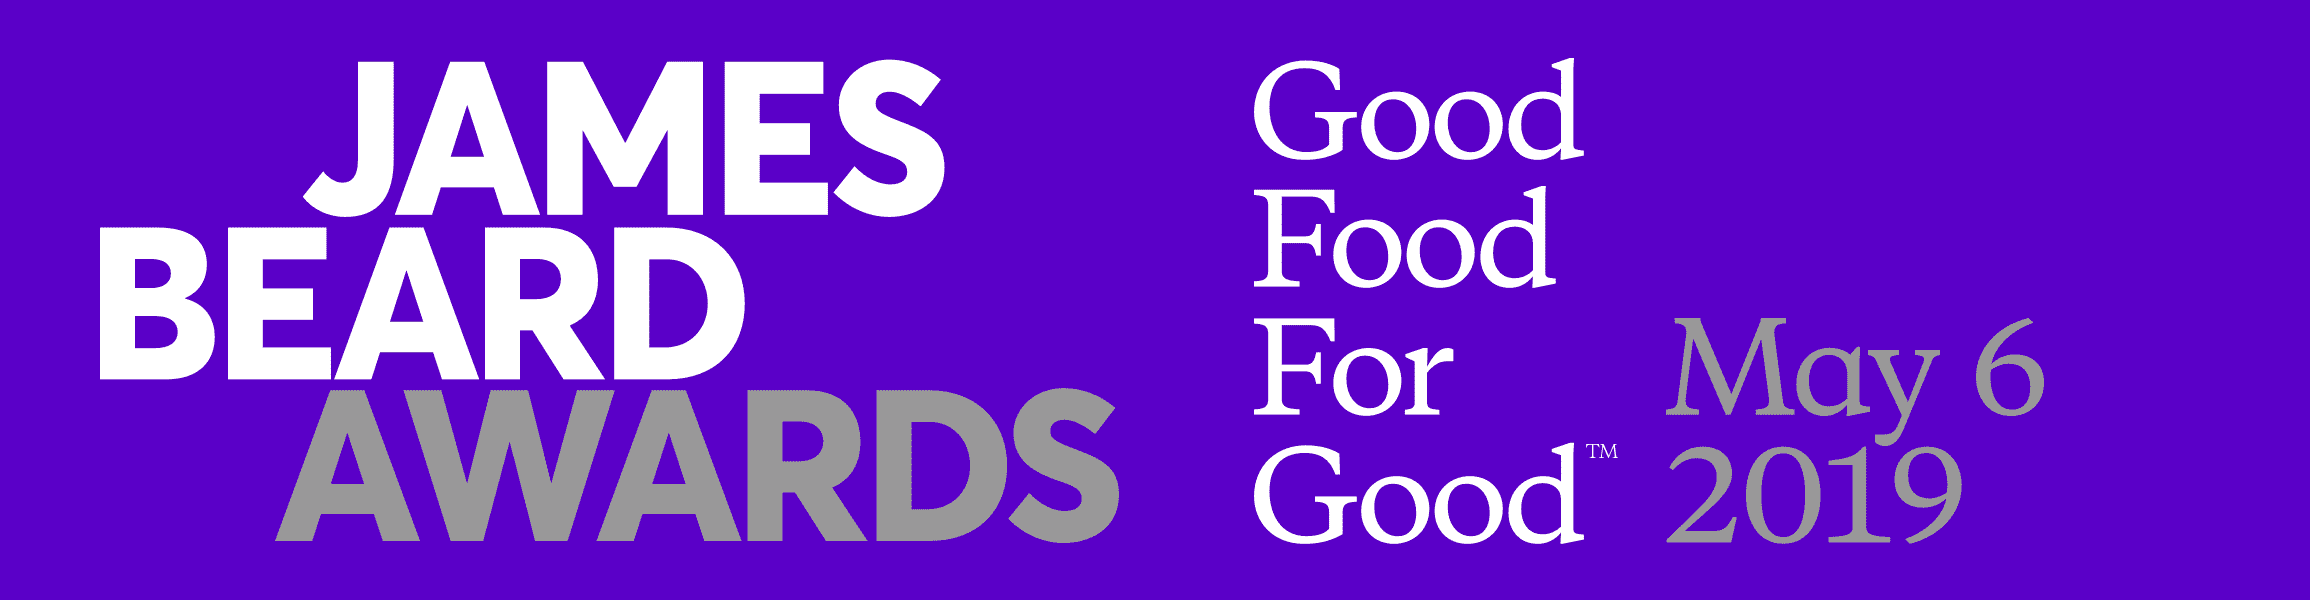 2019 James Beard Awards: Good Food For Good™